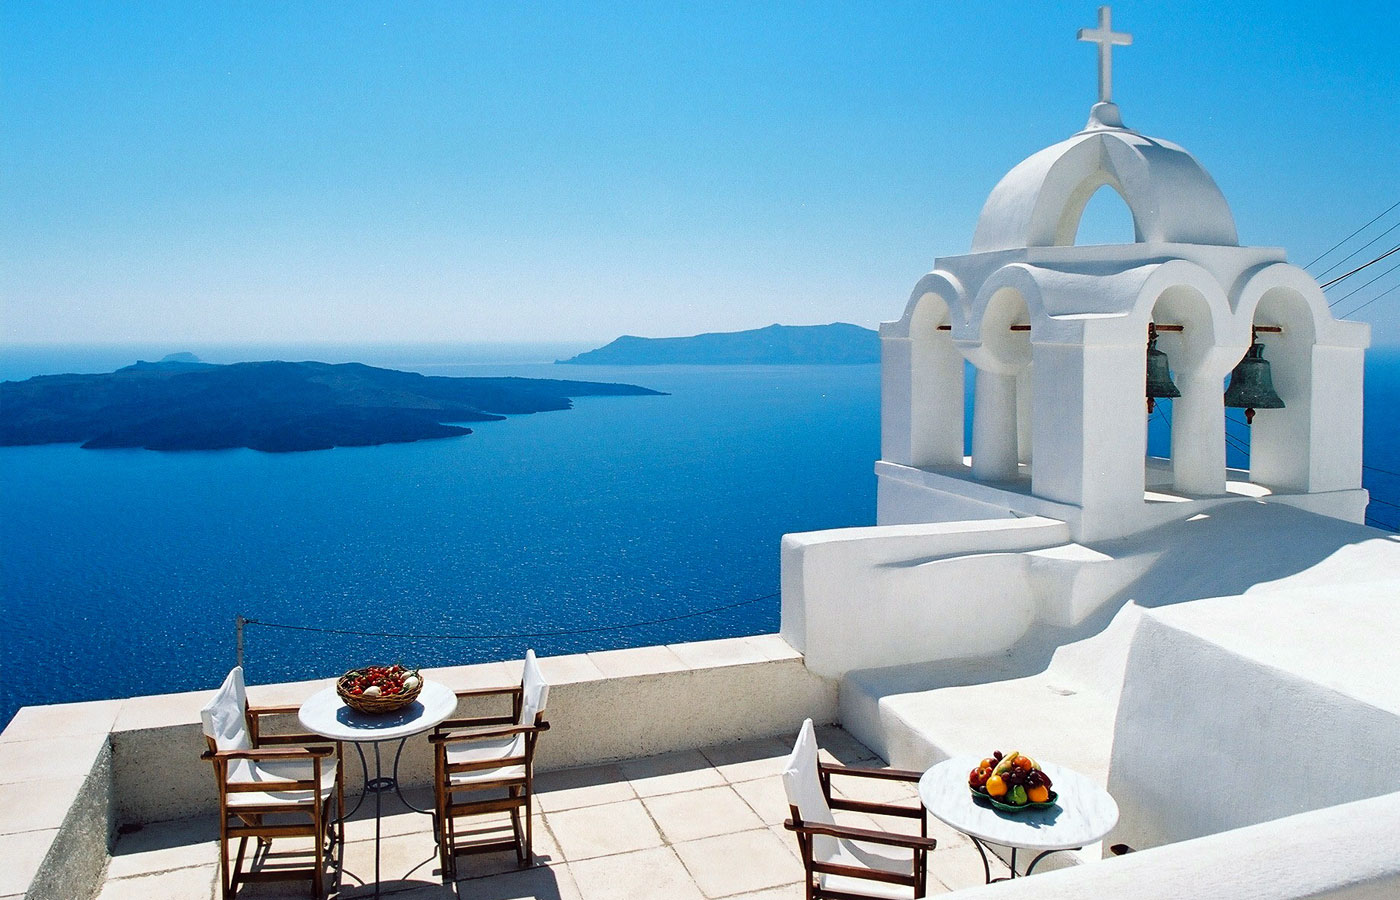 santorini-greece-photo